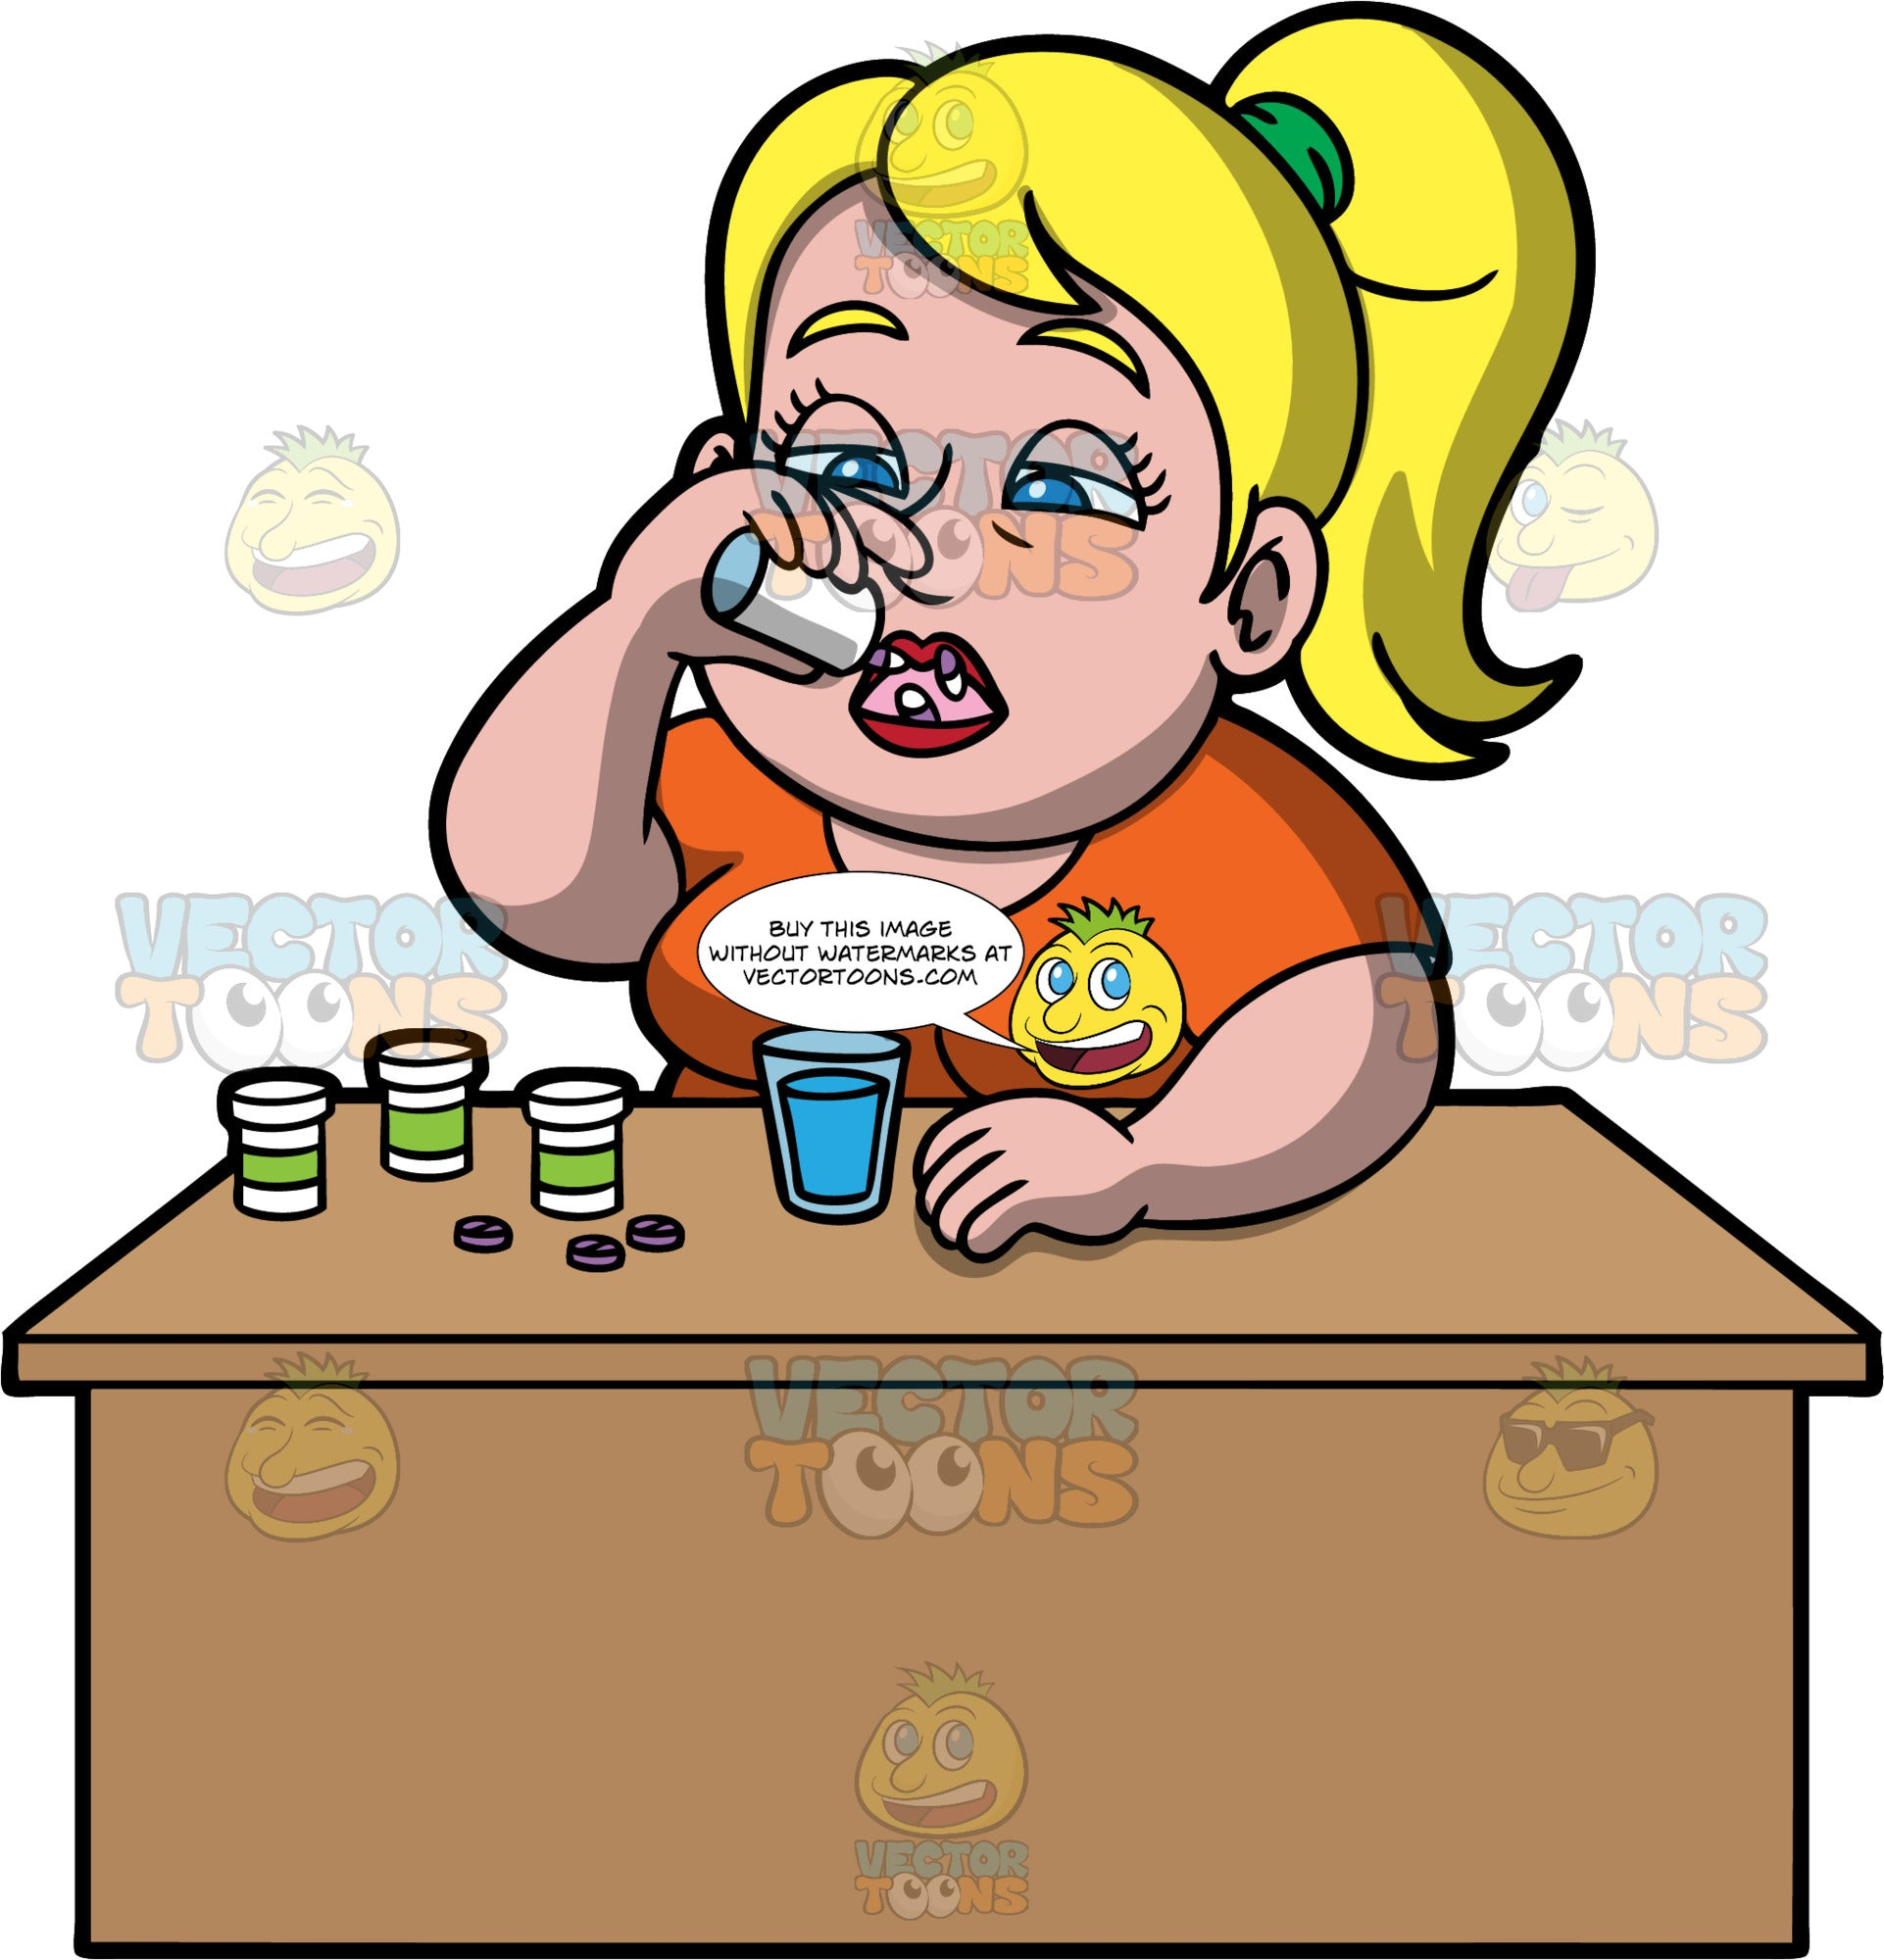 Pat Emptying A Bottle Of Pills Into Her Mouth. A blonde woman wearing an orange shirt, sitting at a table and  tossing a bunch of pills into her mouth